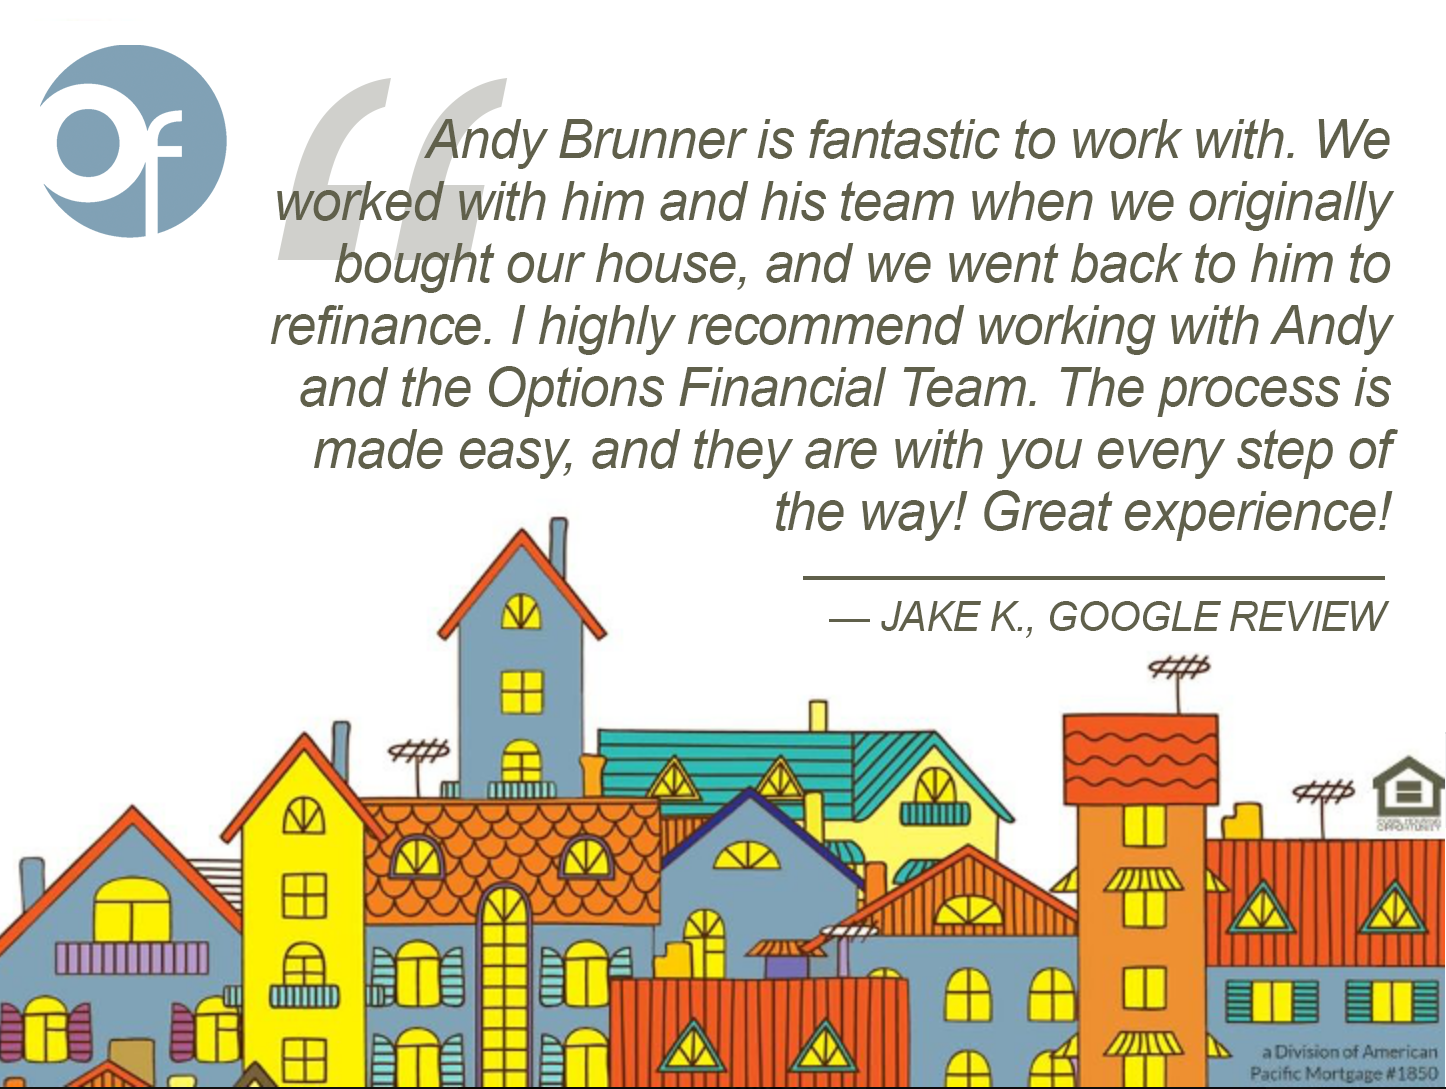 Andy Brunner is fantastic to work with. We worked with him and his team when we originally bought our house, and we went back to him to refinance. I highly recommend working with Andy and the Options Financial Team. The process is made easy, and they are with you every step of the way! Great experience!